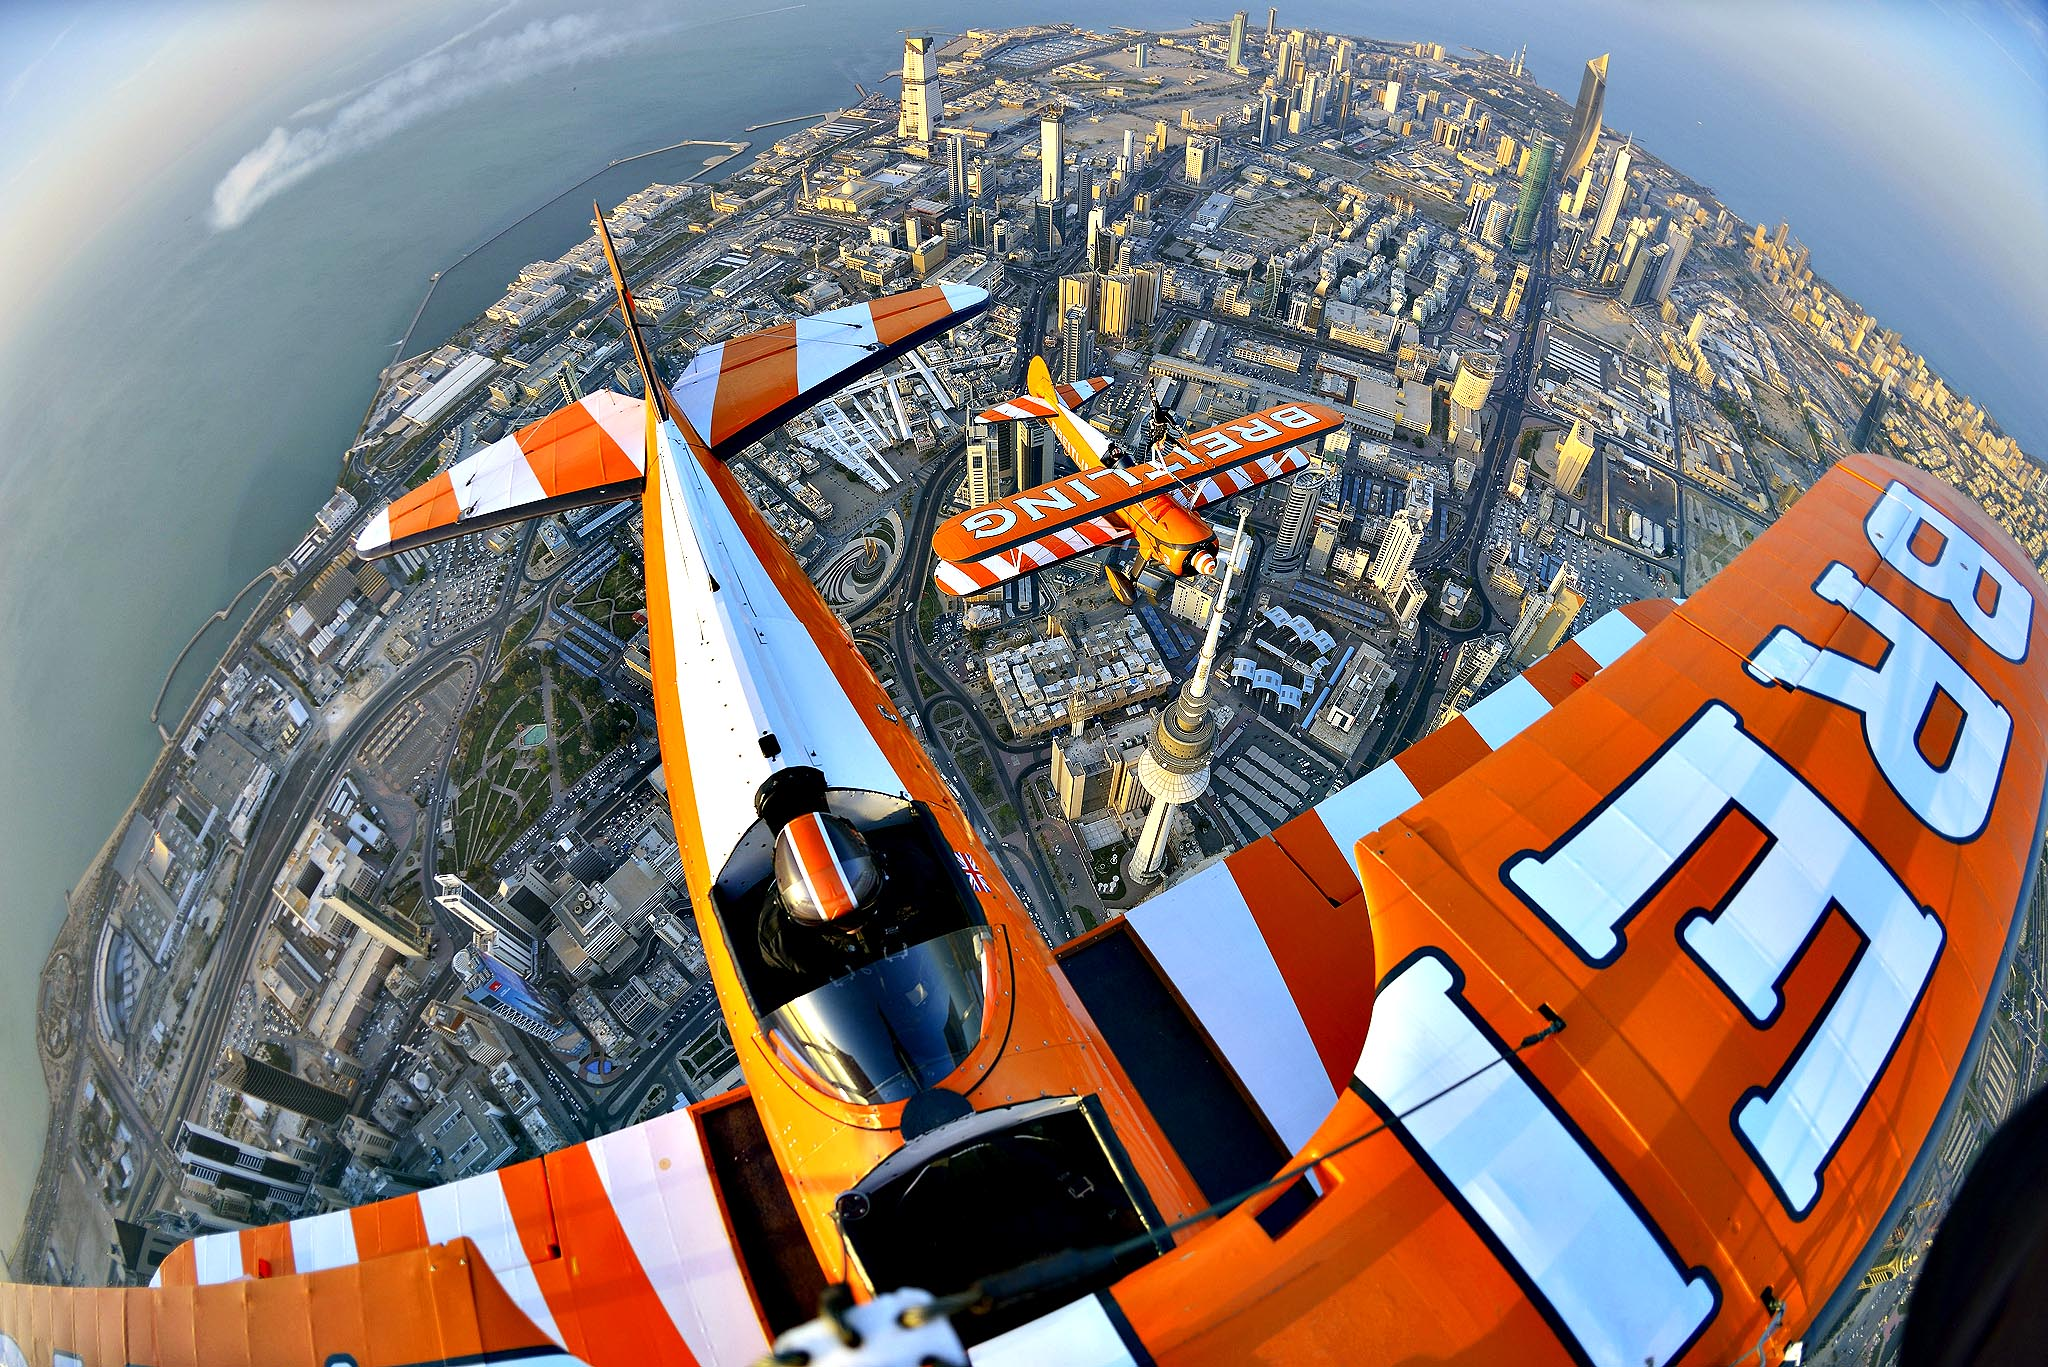 Breitling Wingwalker Freya Paterson, from Liverpool, UK, flies above Kuwait City's iconic Water Towers with pilots David Barrell and Martyn Carrington.  The team loop and roll up to 160 mph enduring G-forces of 4-5g. Crowds are expected to line the Kuwaiti coastline to catch a glimpse of the Wingwalking team on Saturday, to mark the opening of the first dedicated boutique in the city for the prestigious watch brand.